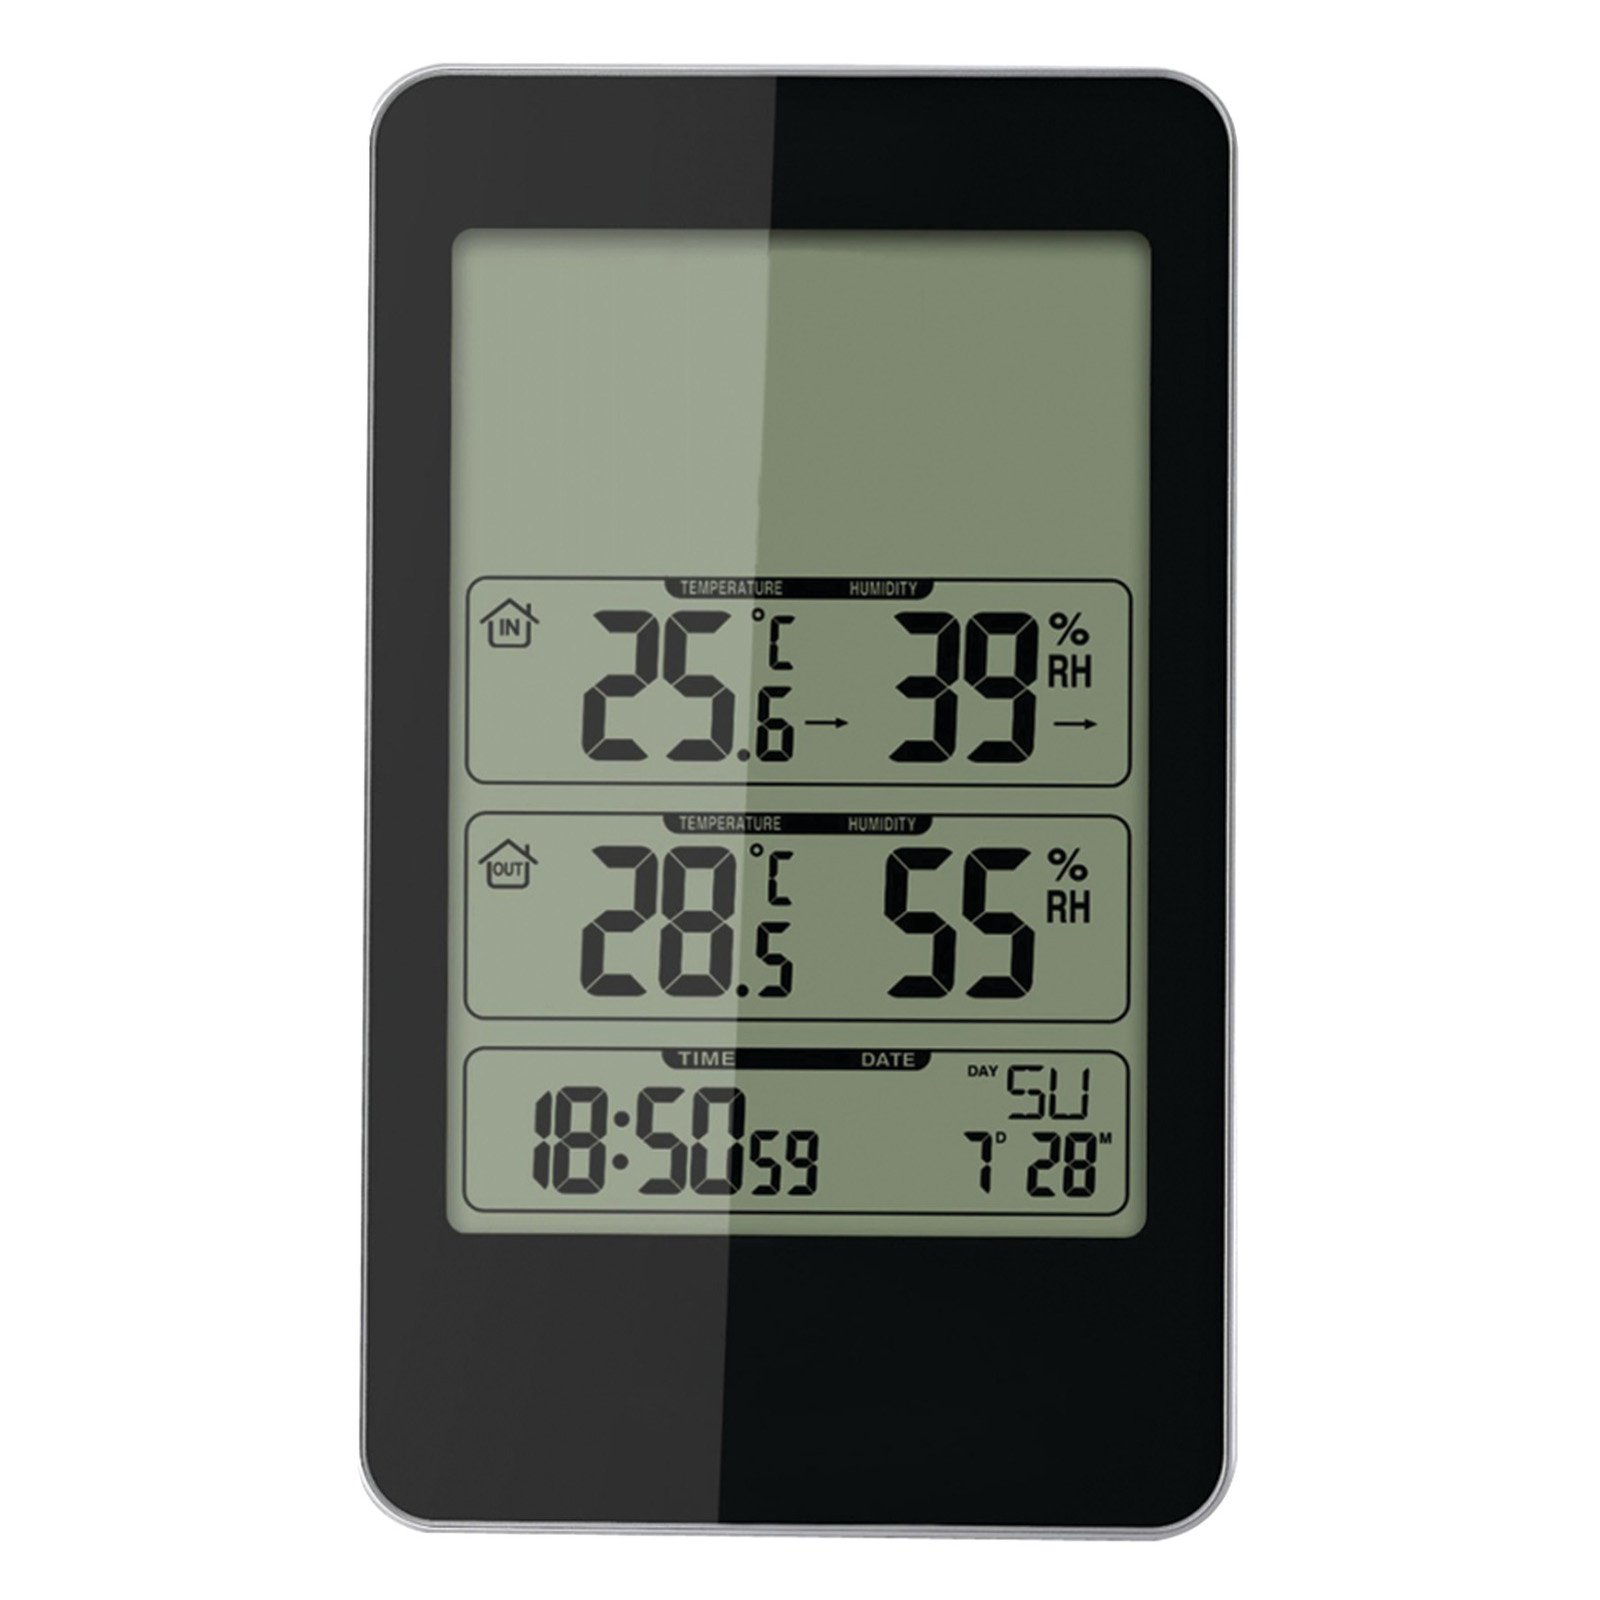 TAYLOR 1733 Wireless In Out Thermometer w Barometer G4017085 by TAYLOR(R) PRECISION PRODUCTS